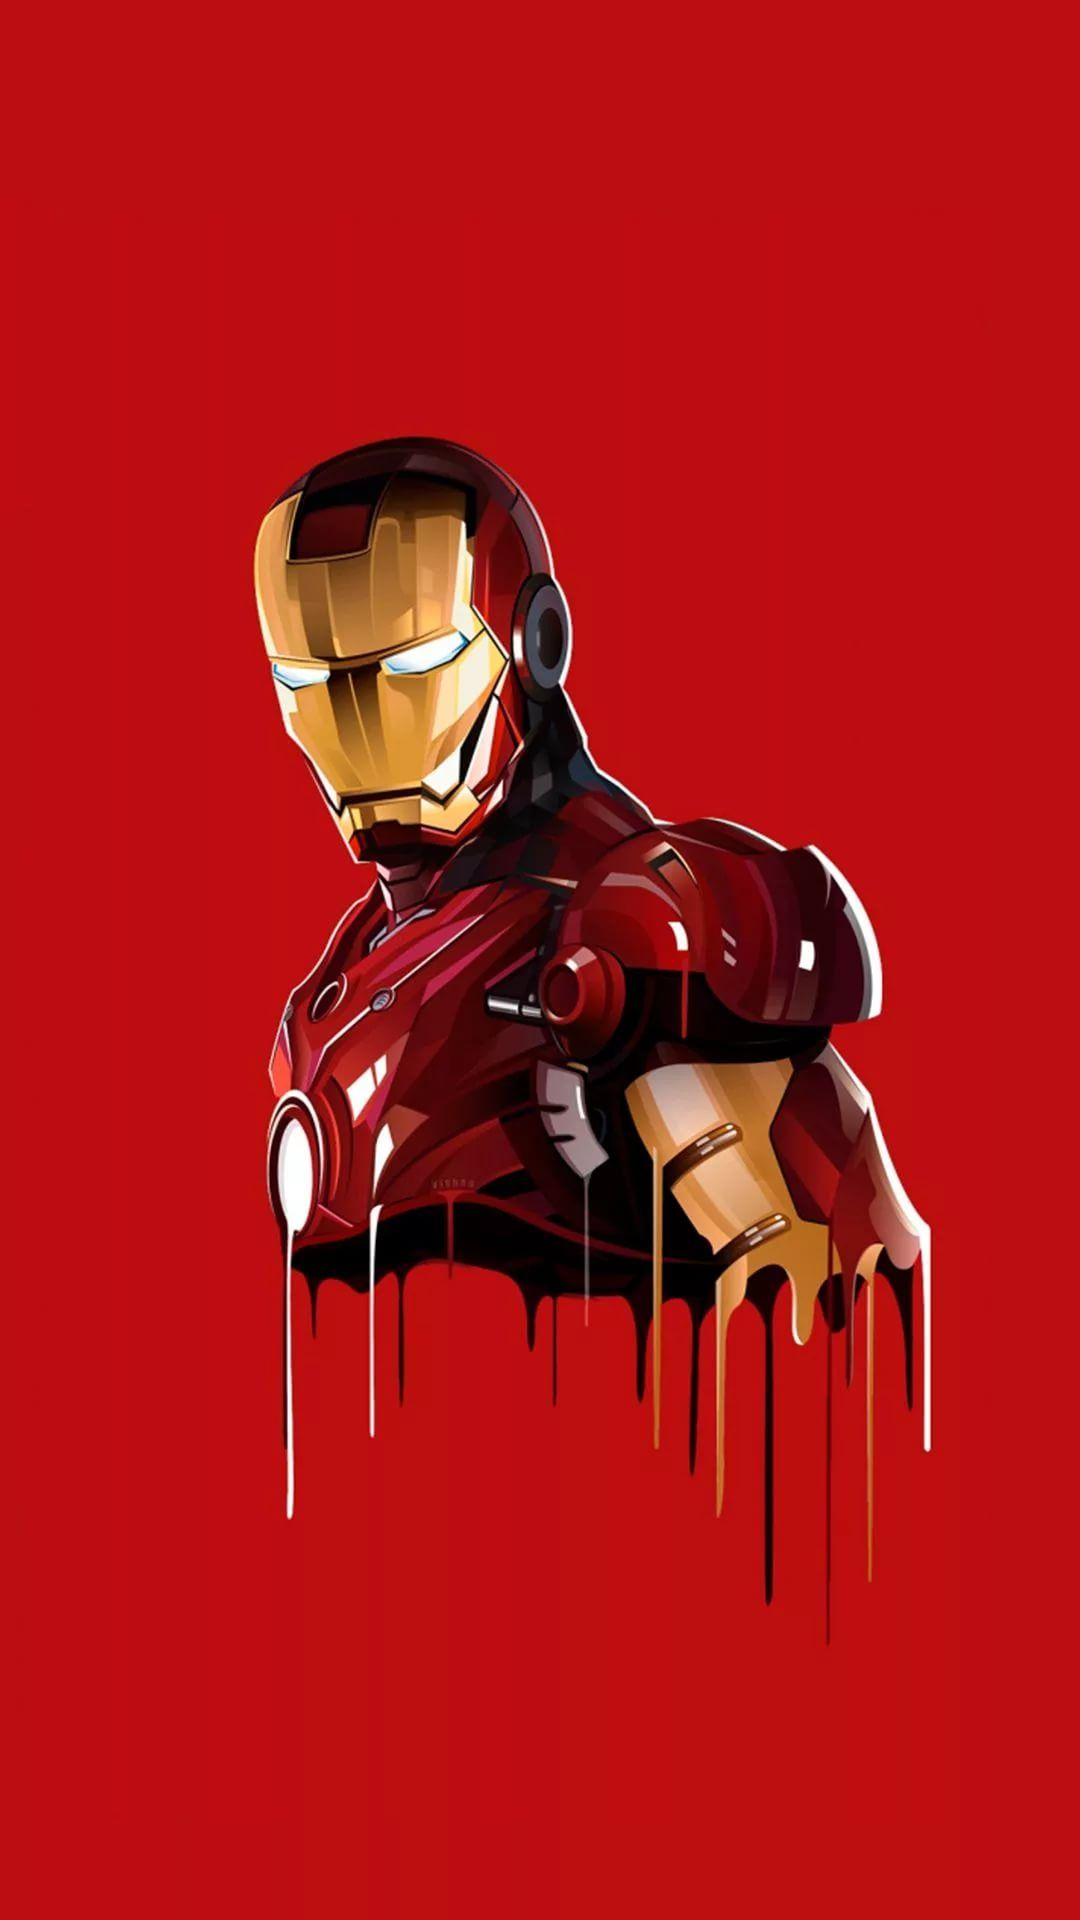 Iron Man D wallpaper for Android